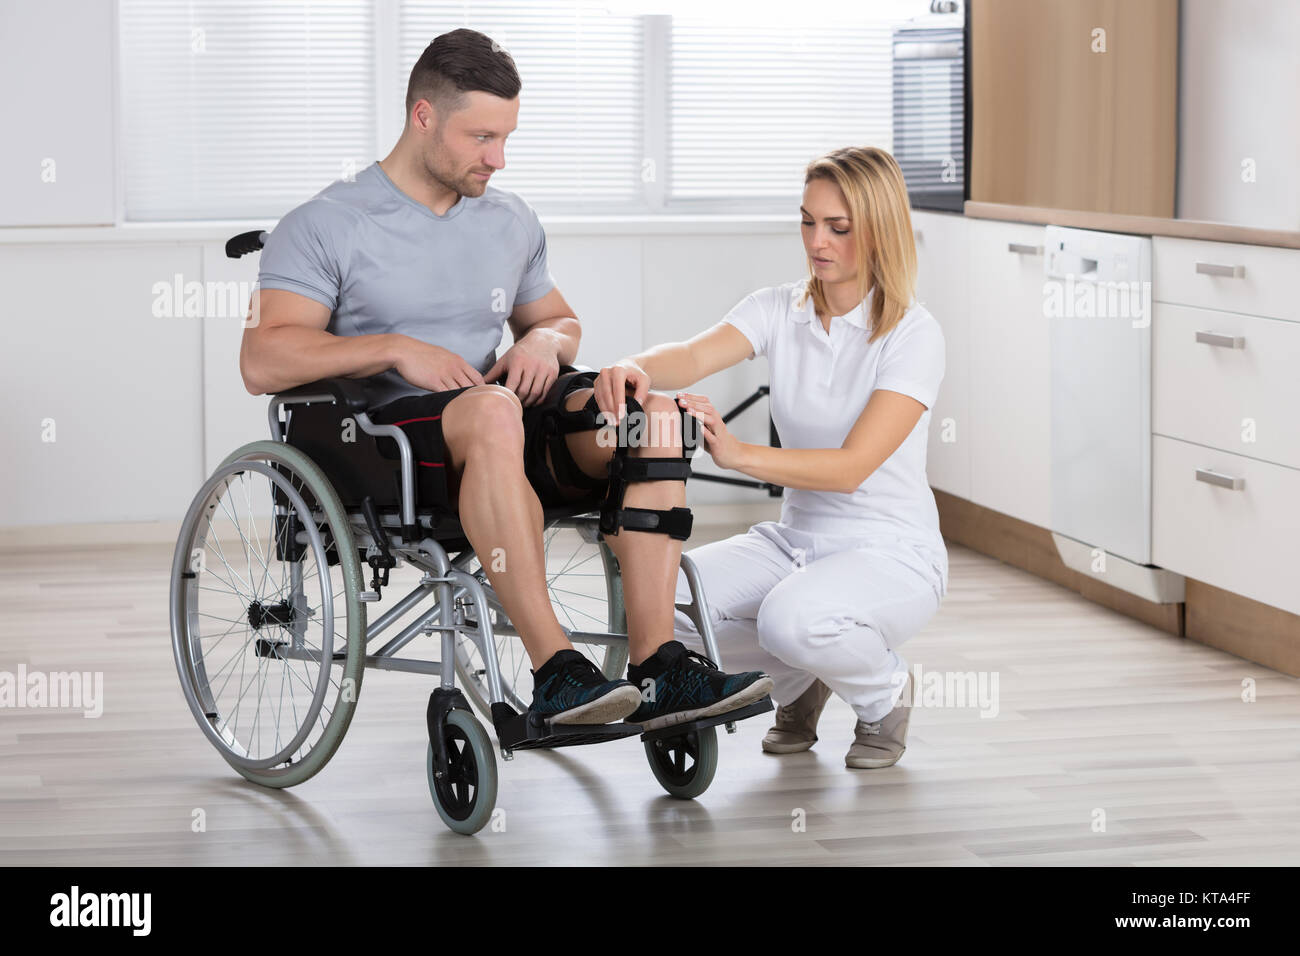 Female Physiotherapist Fixing Knee Braces On Man's Leg - Stock Image